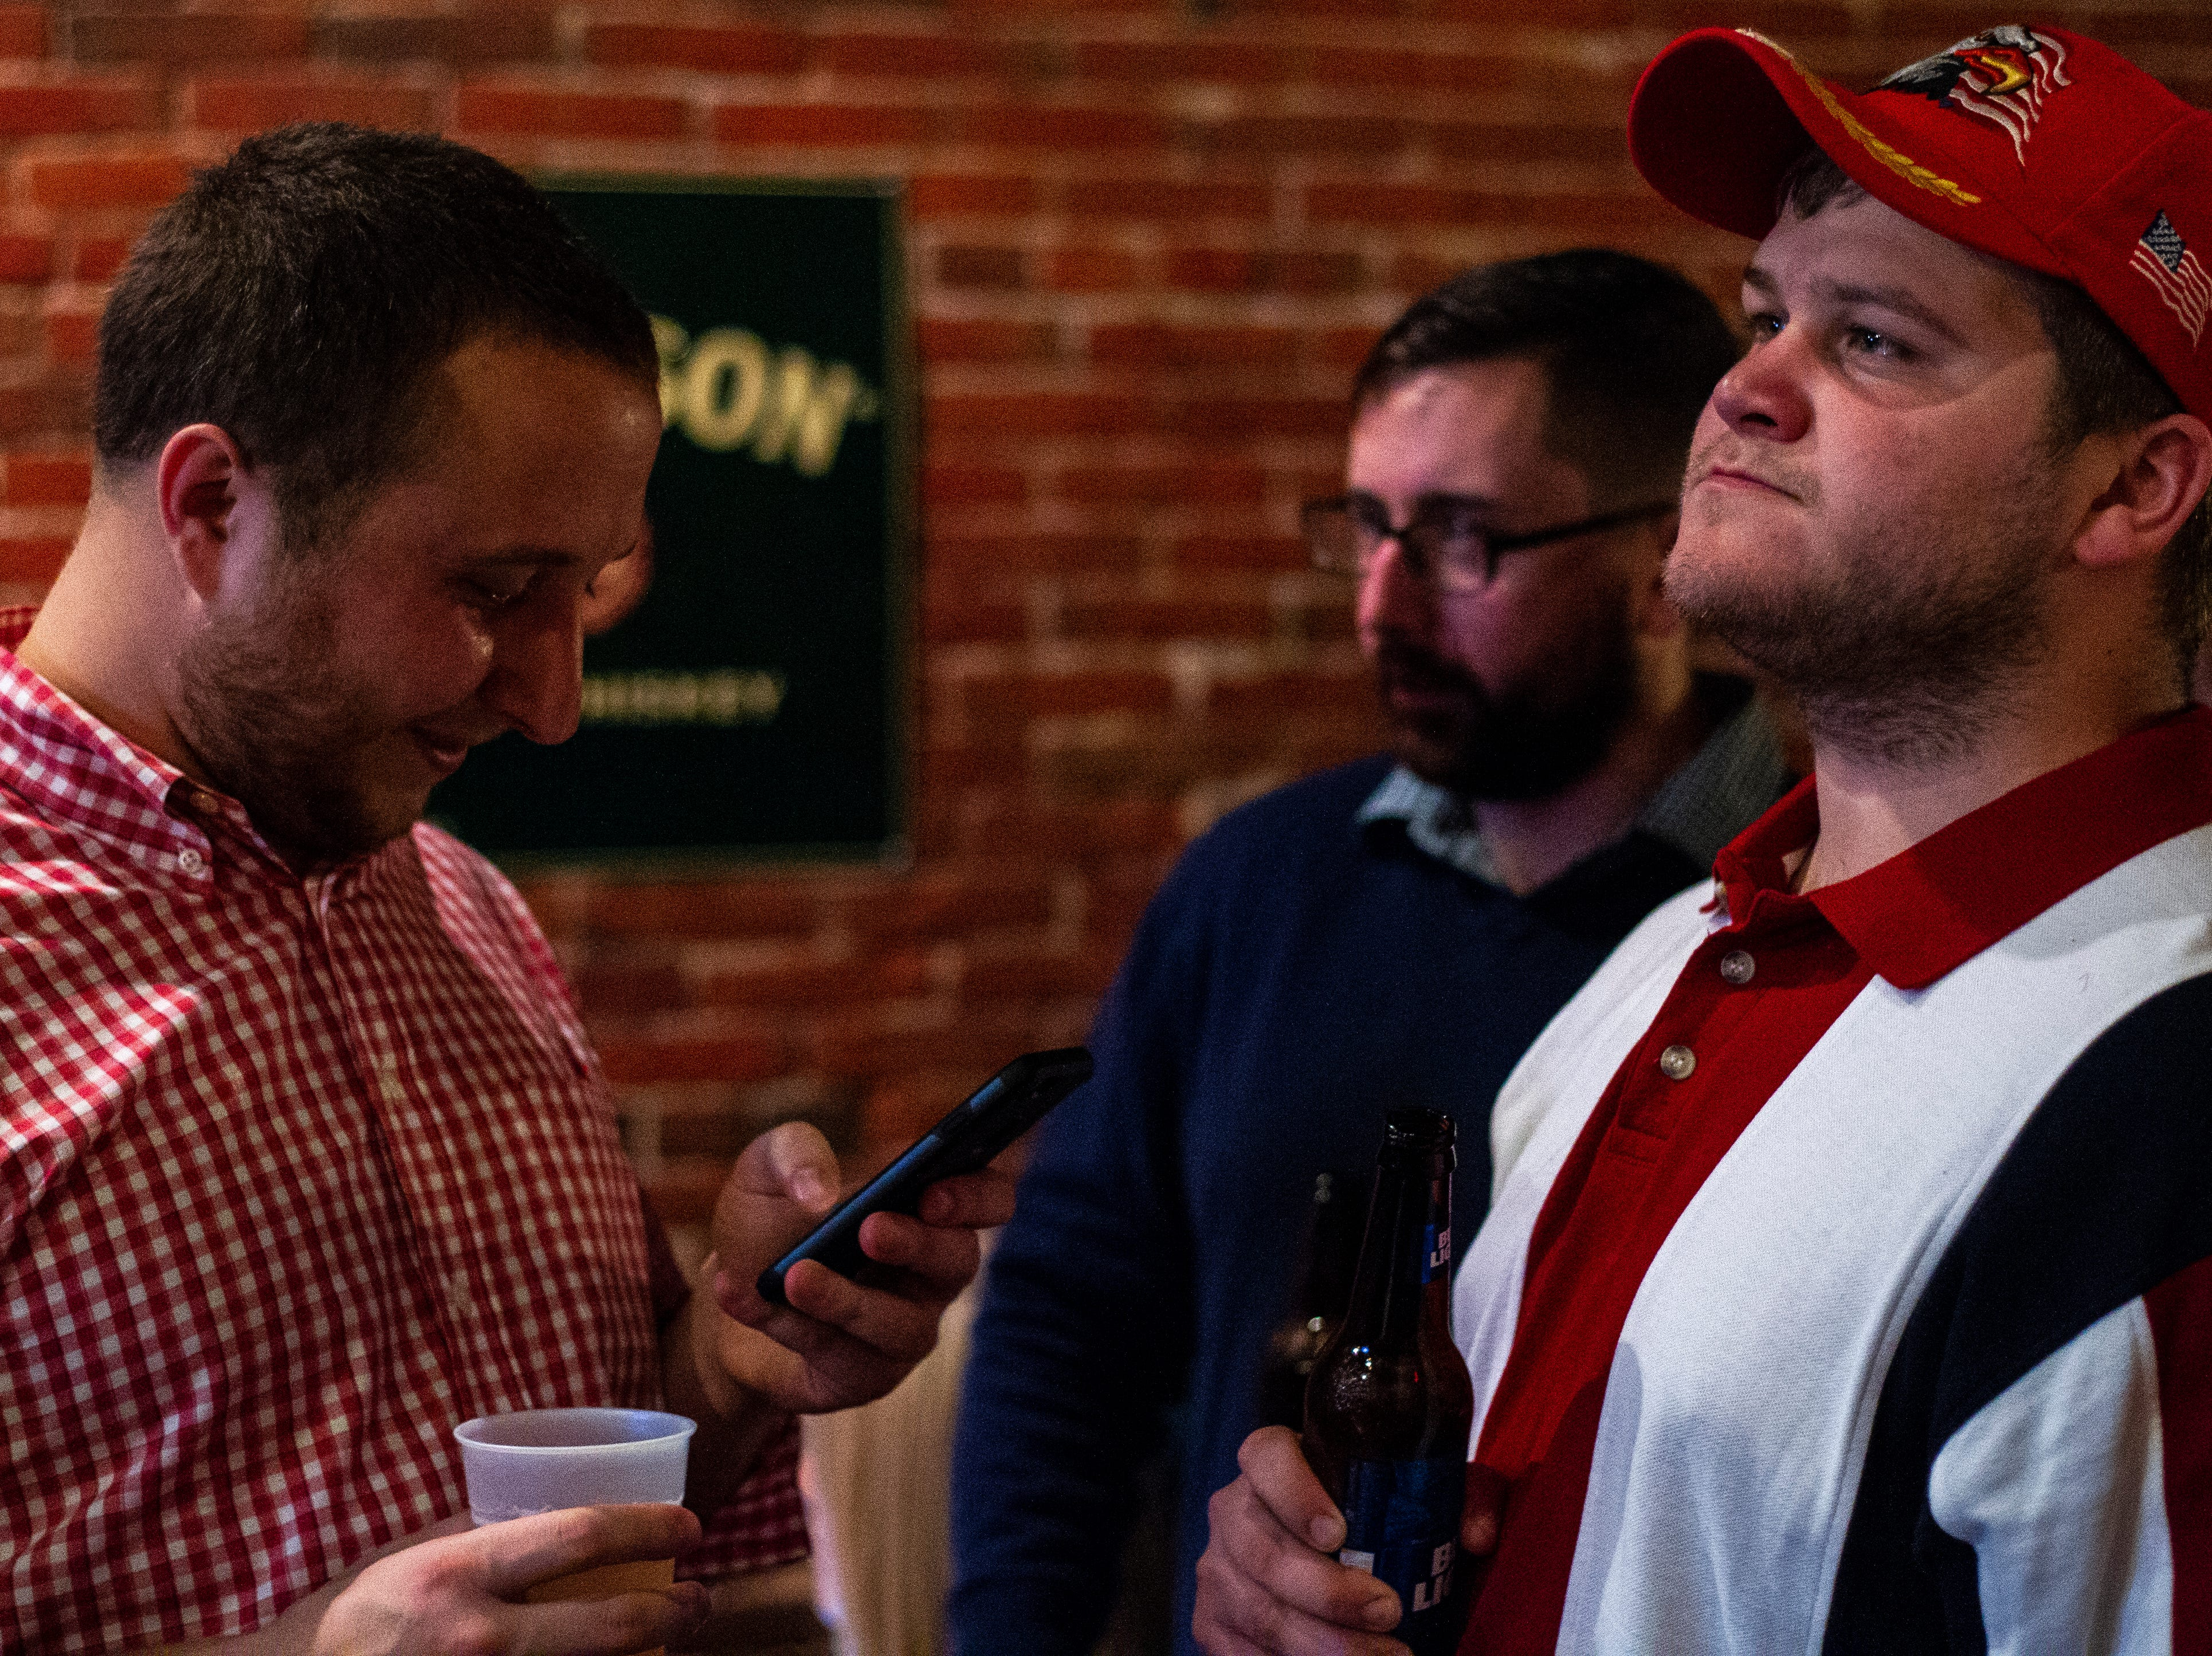 Patrick Wronkiewicz (left) checks election results during a watch party on Tuesday, Nov. 6, 2018, at the Airliner in Iowa City.